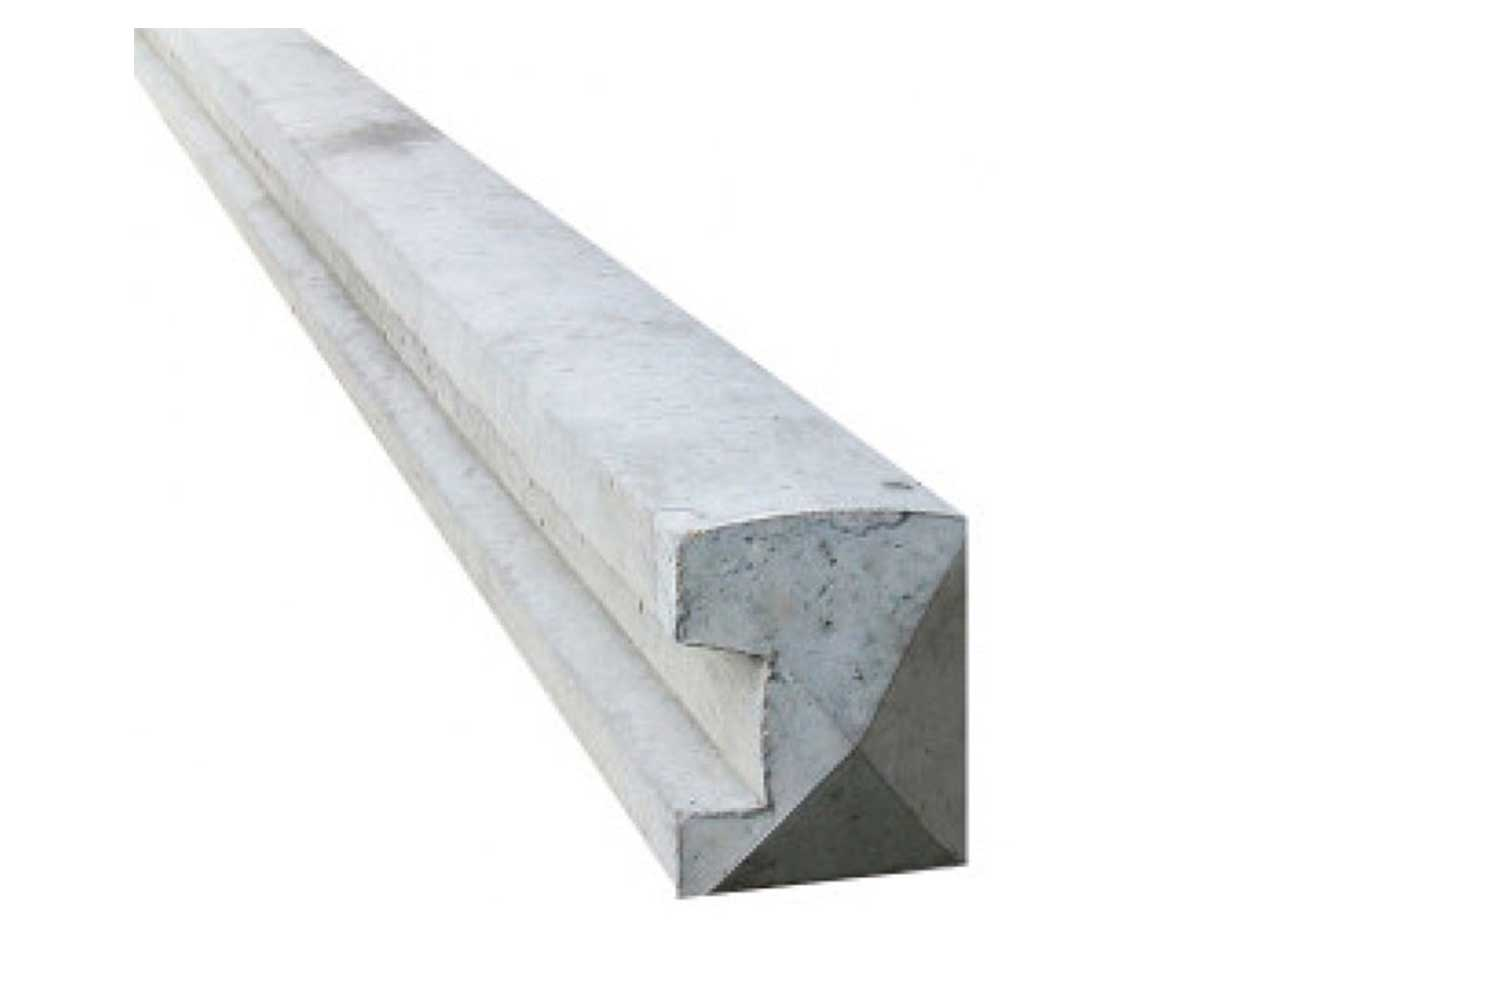 Wet Cast Slotted End Post 5 x 4 x 9ft